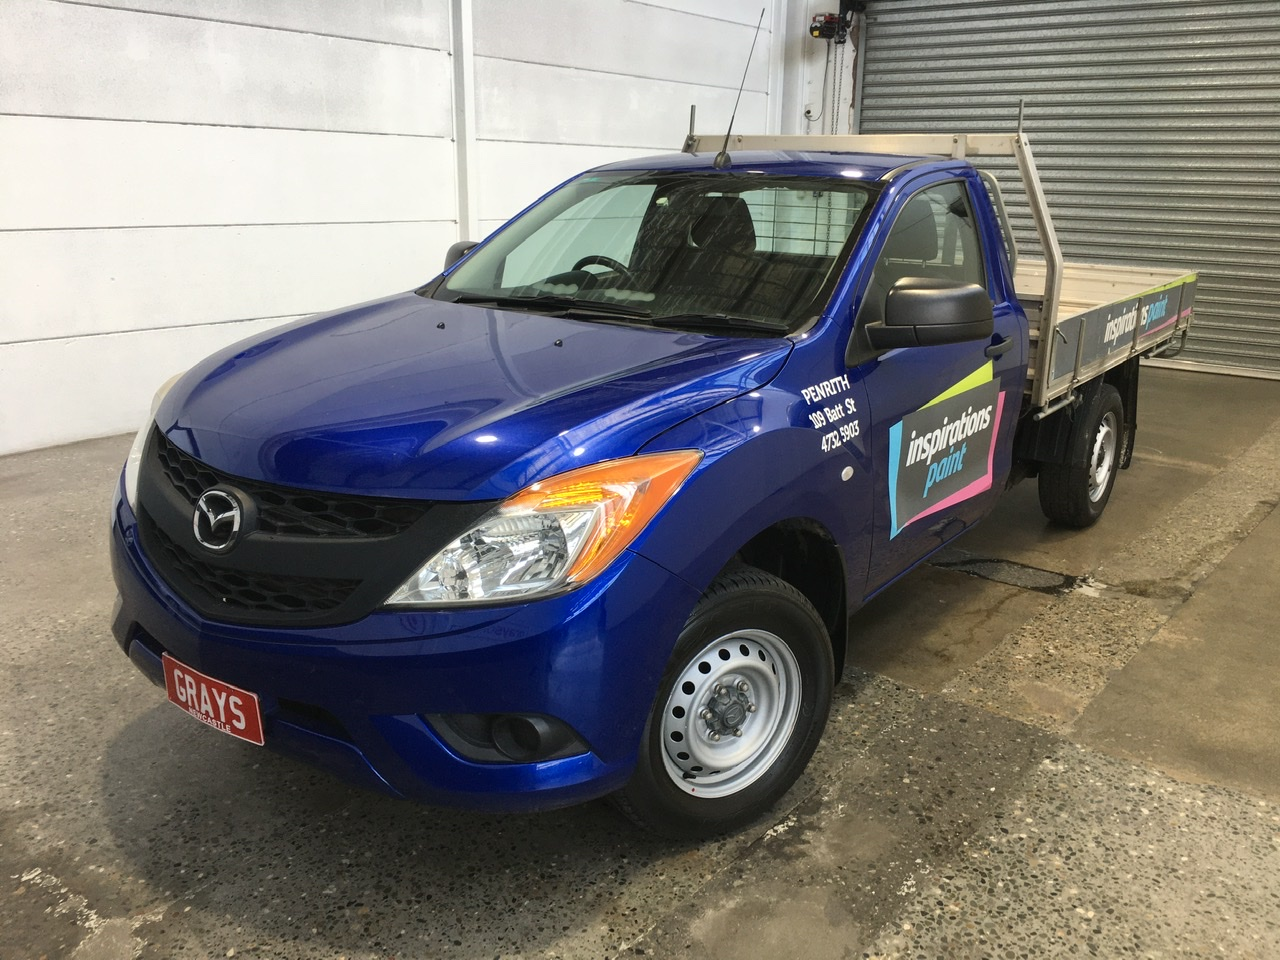 2015 Mazda BT-50 4X2 XT Turbo Diesel Manual Cab Chassis